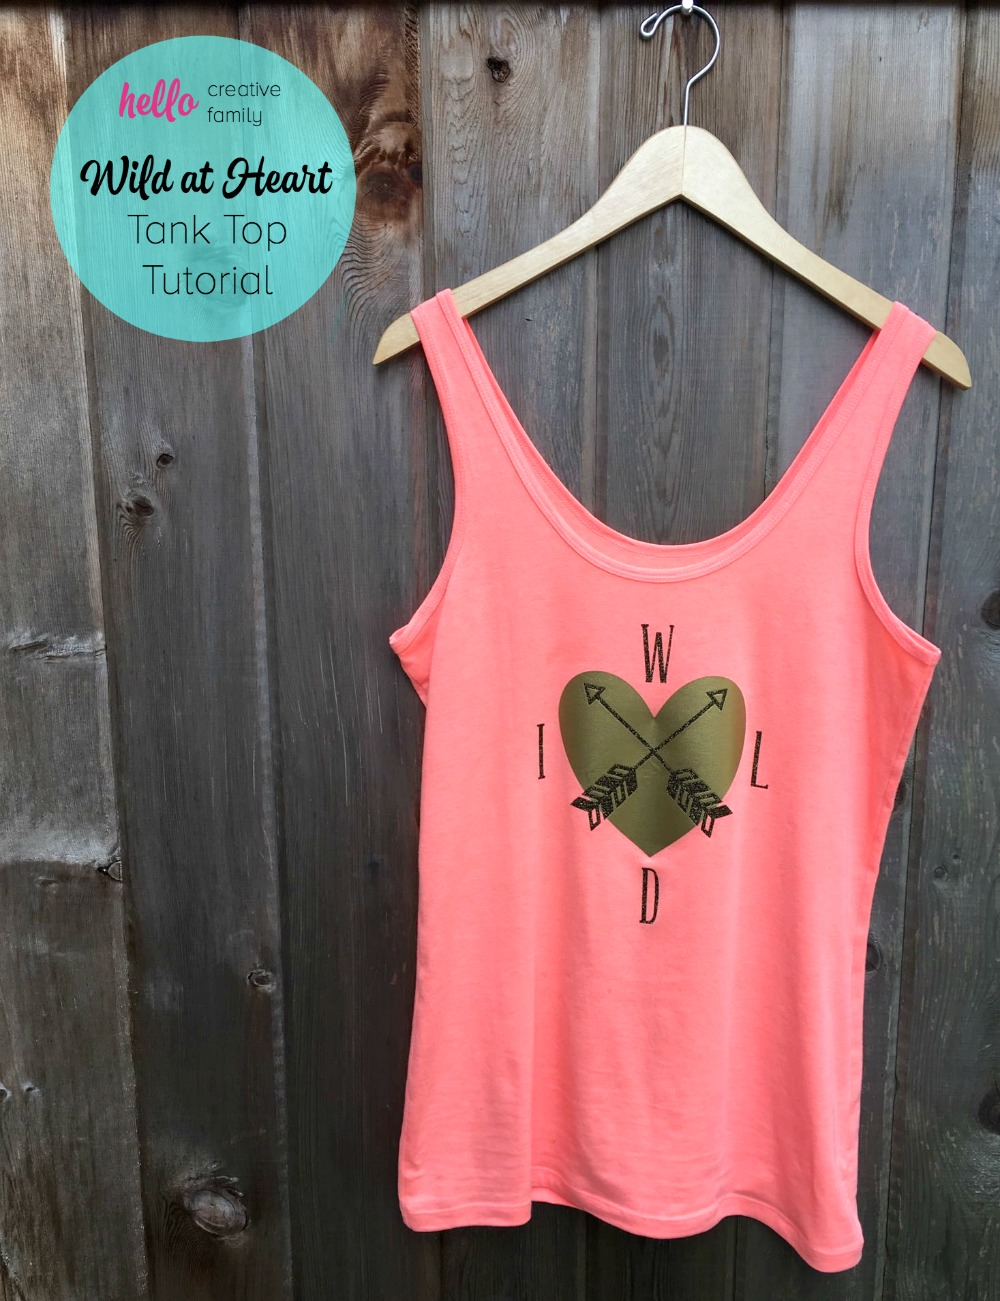 Diy wild at heart tank top tutorial hello creative family for How much is a custom t shirt